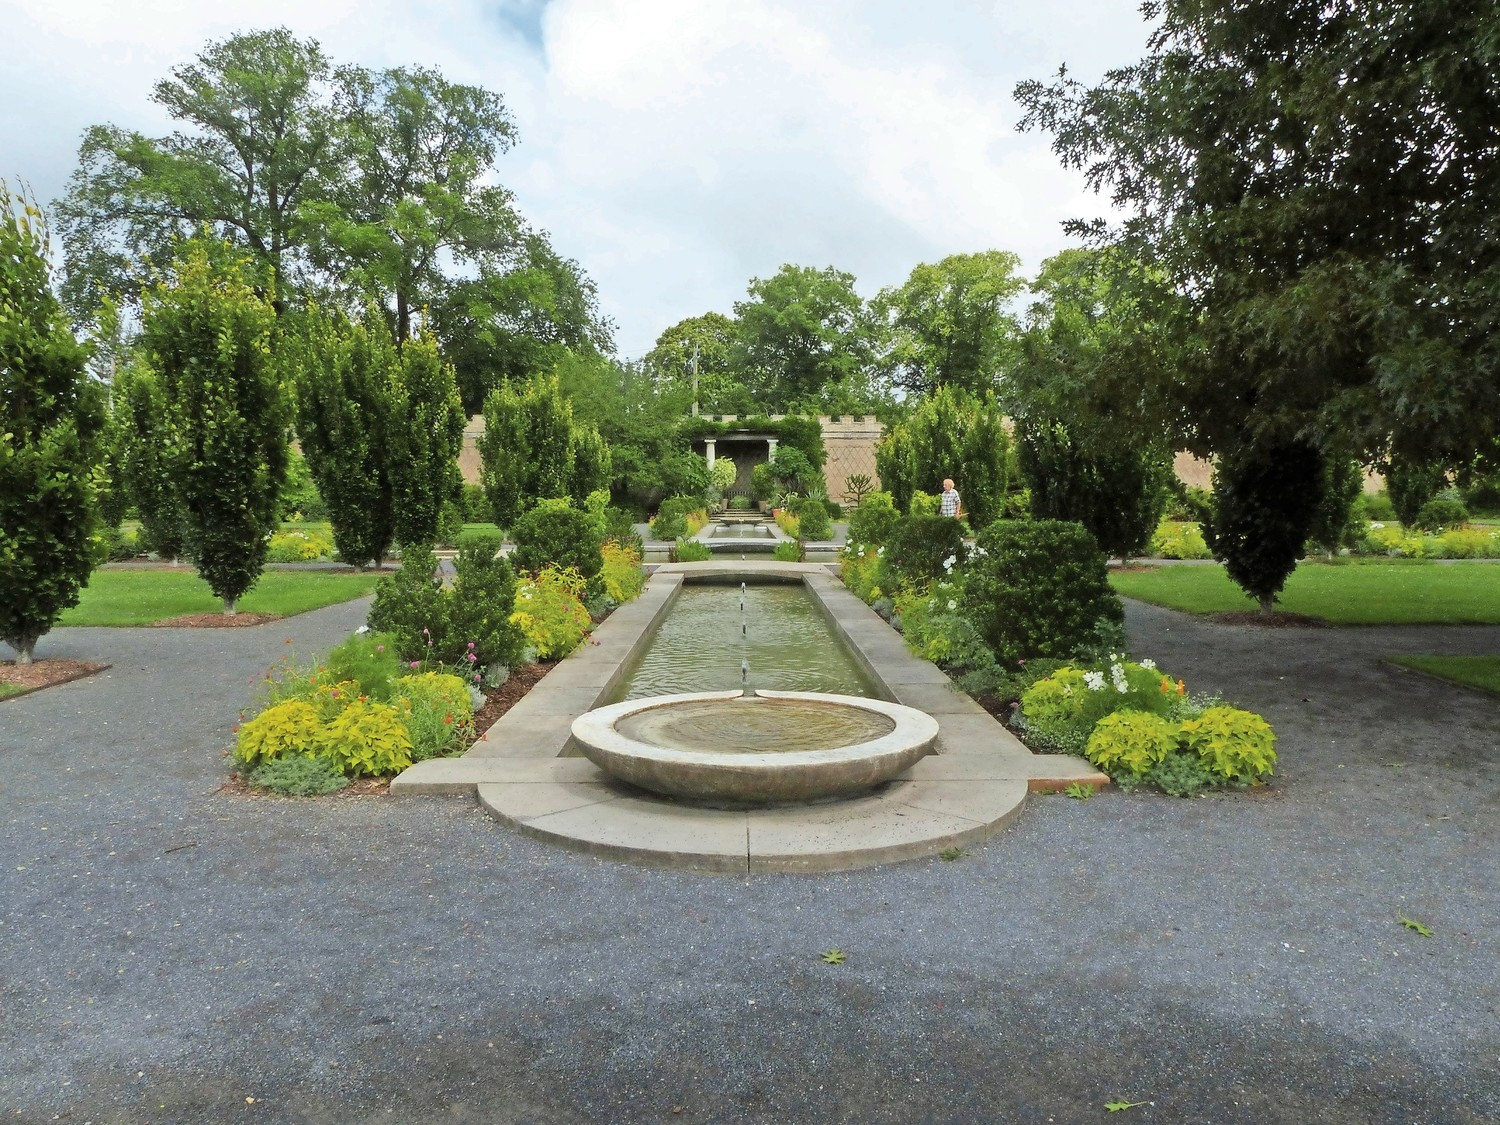 It might seem there's a bit of an Islamic touch to Untermyer Garden, especially when walking through the central channel toward the amphitheater, but the Yonkers attraction is actually influences by Indo-Persian designs.